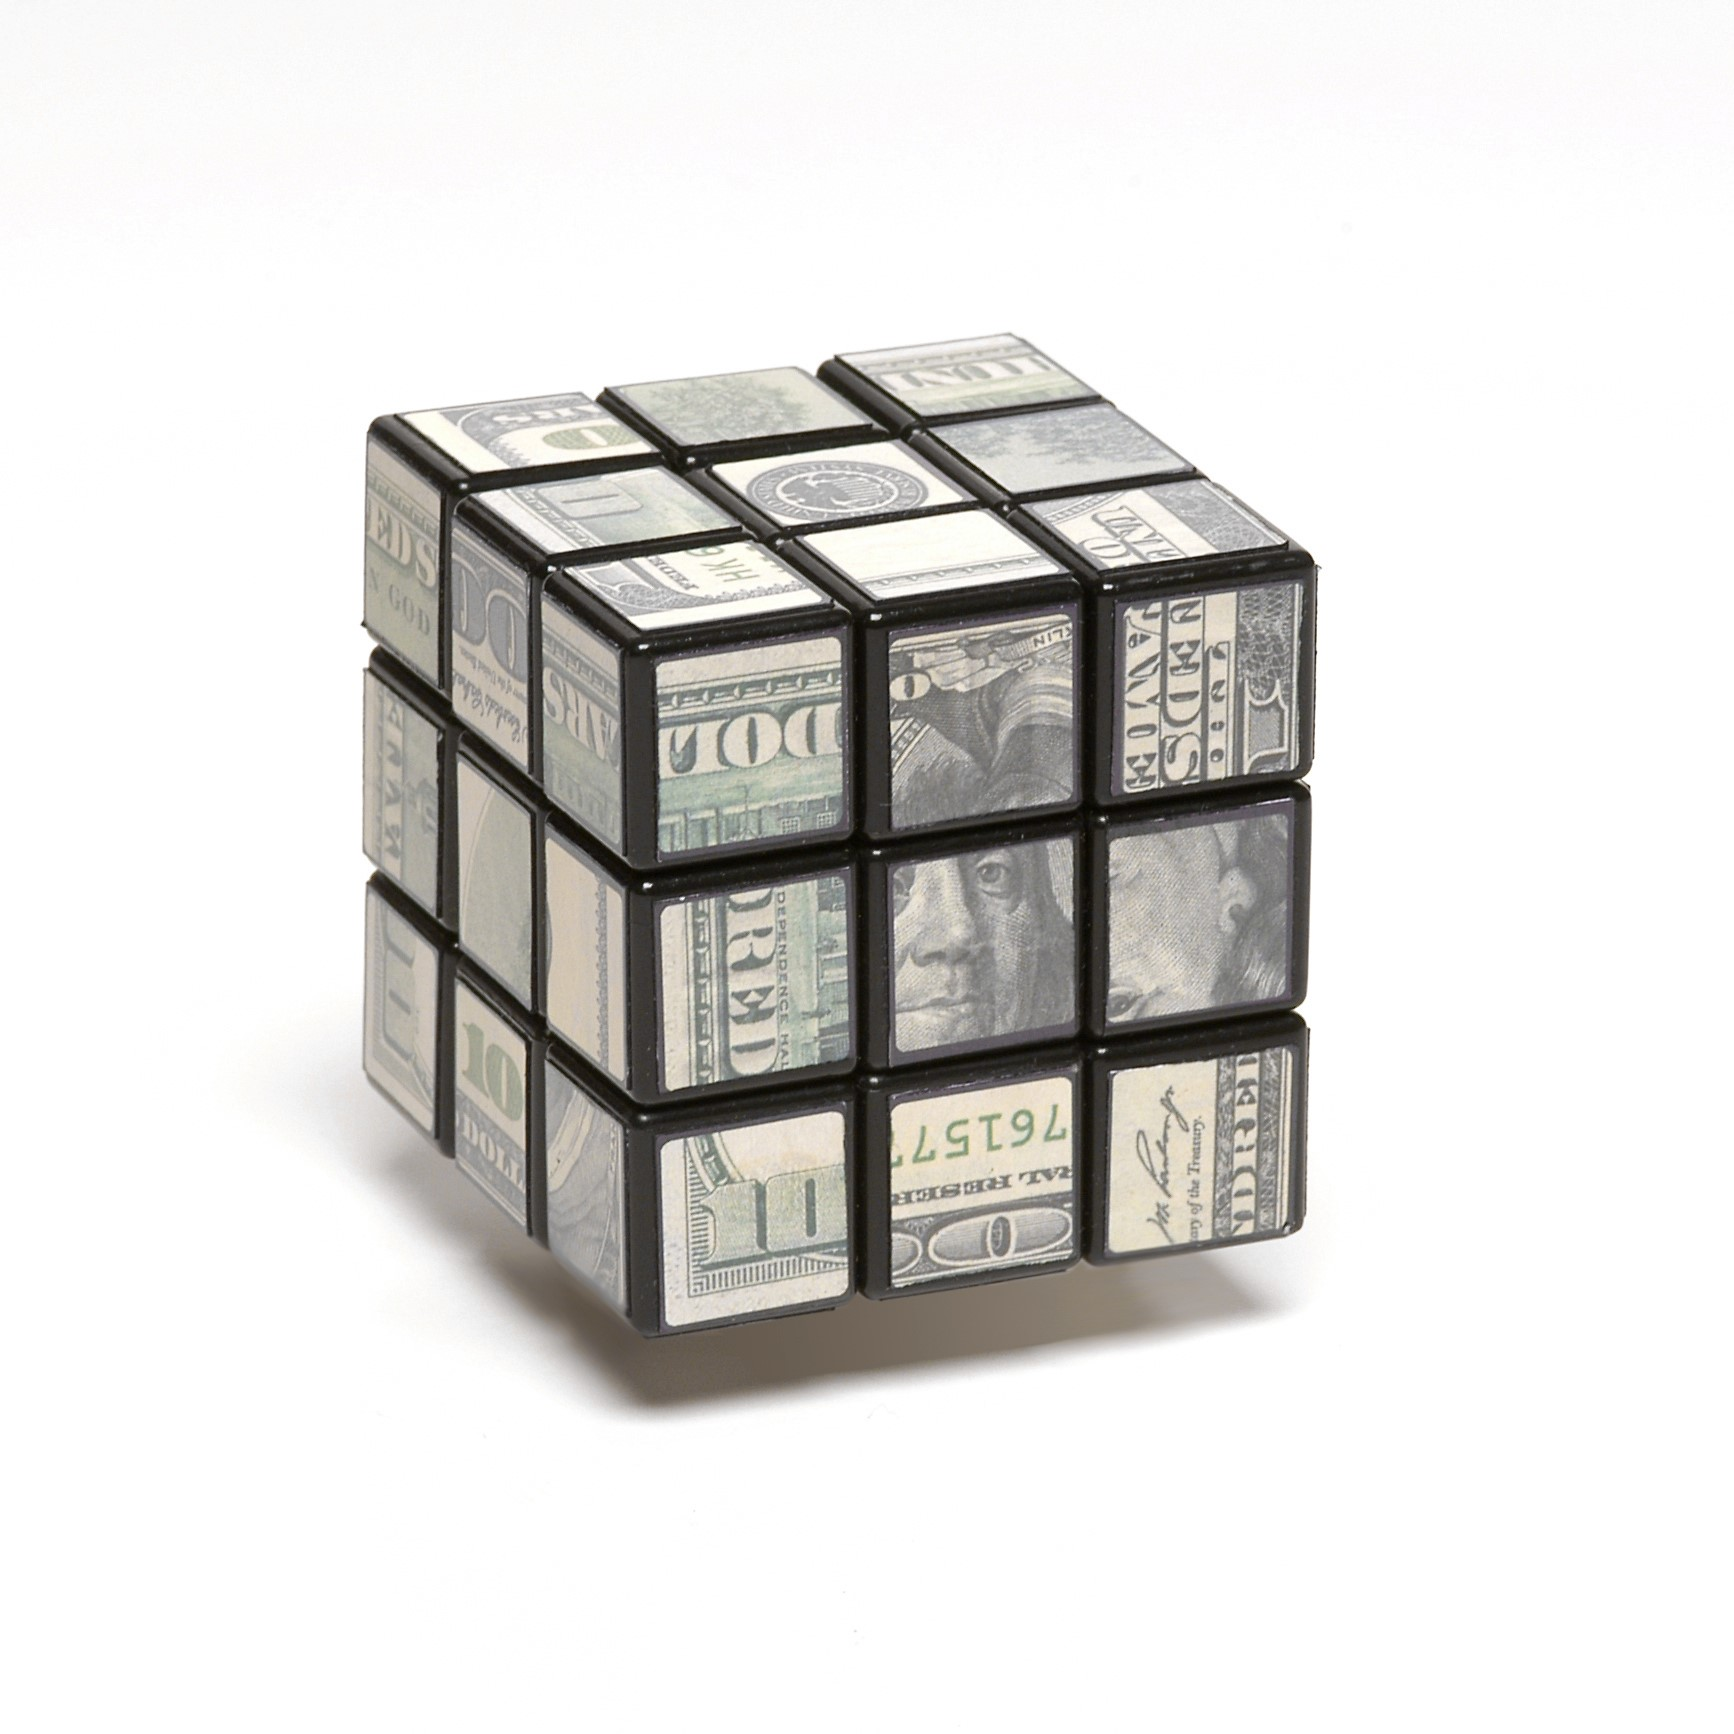 "John Ilg,  Job Search , Archival digital prints on Rubix's Cube, 2.25"" cube, 2012"